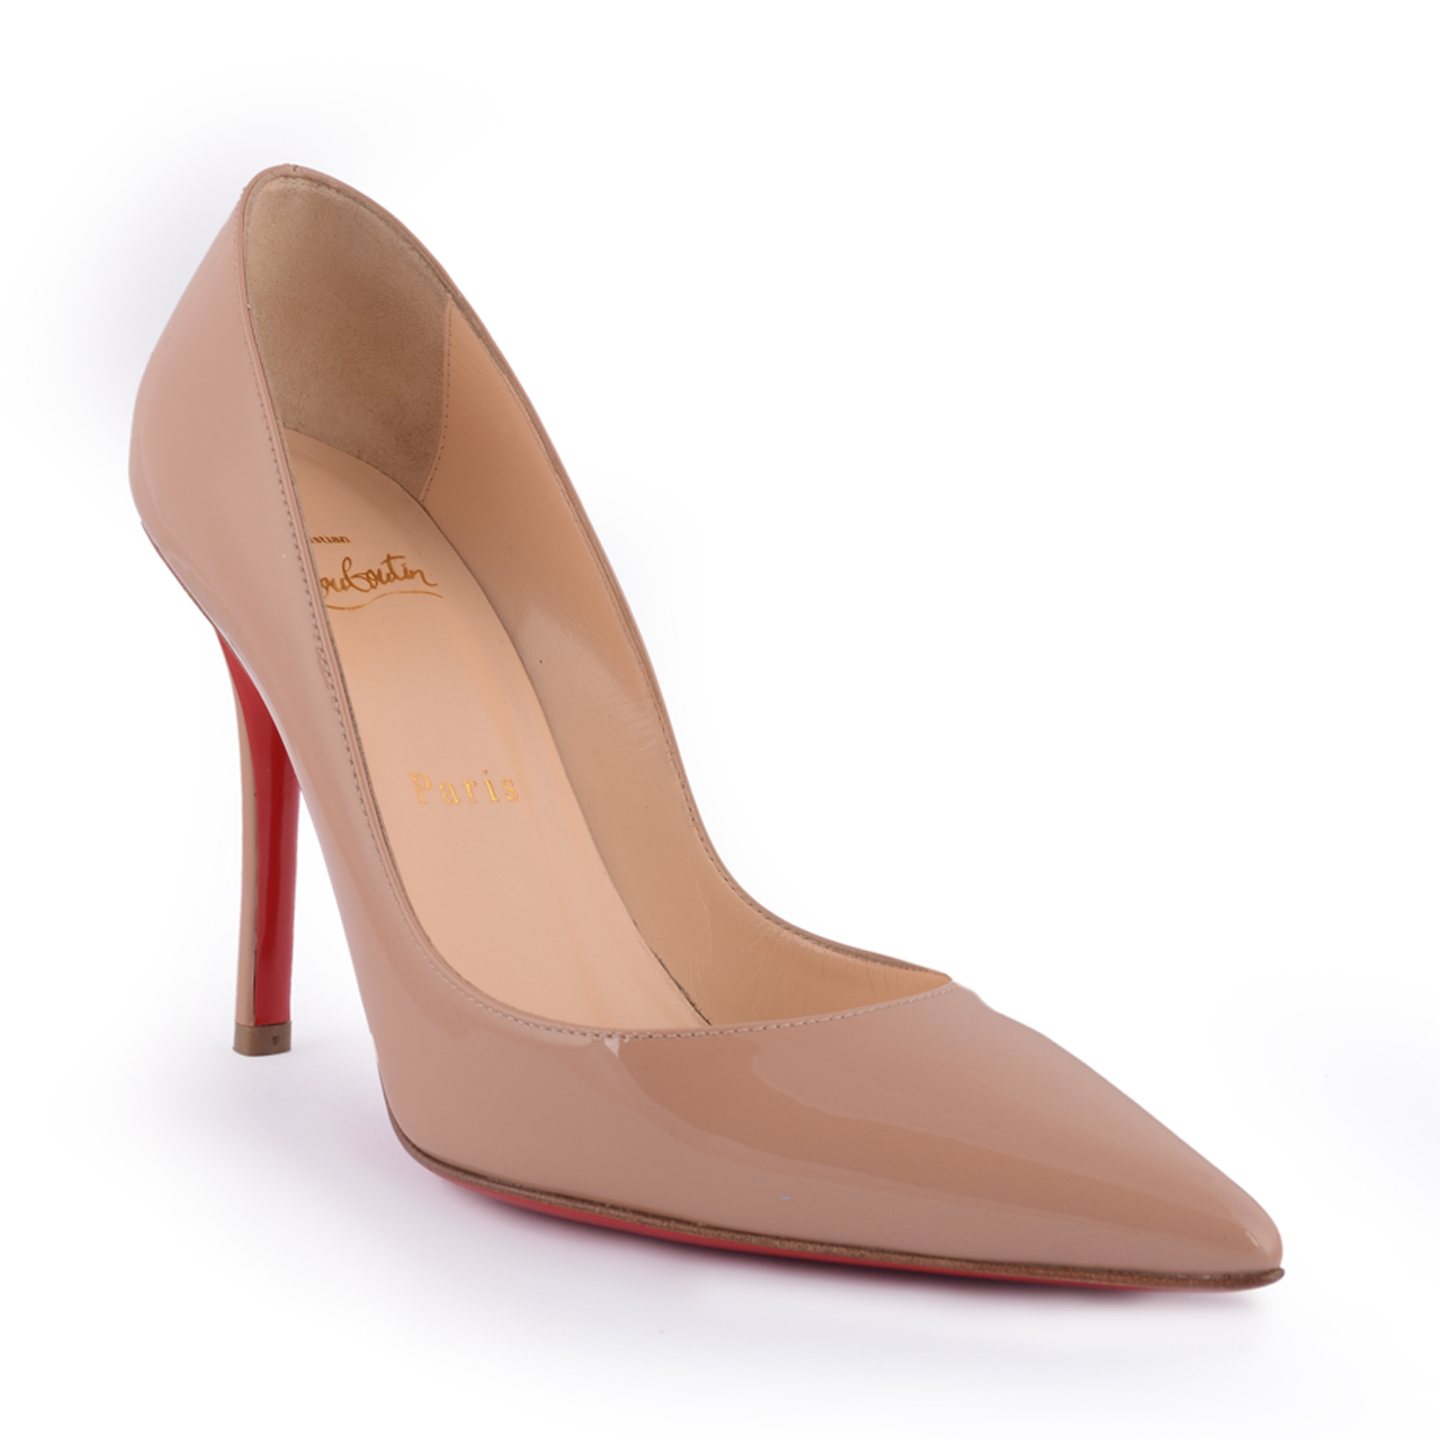 1656d1a025db Christian Louboutin Apostrophy Nude Pumps 100 mm Size 36 ...